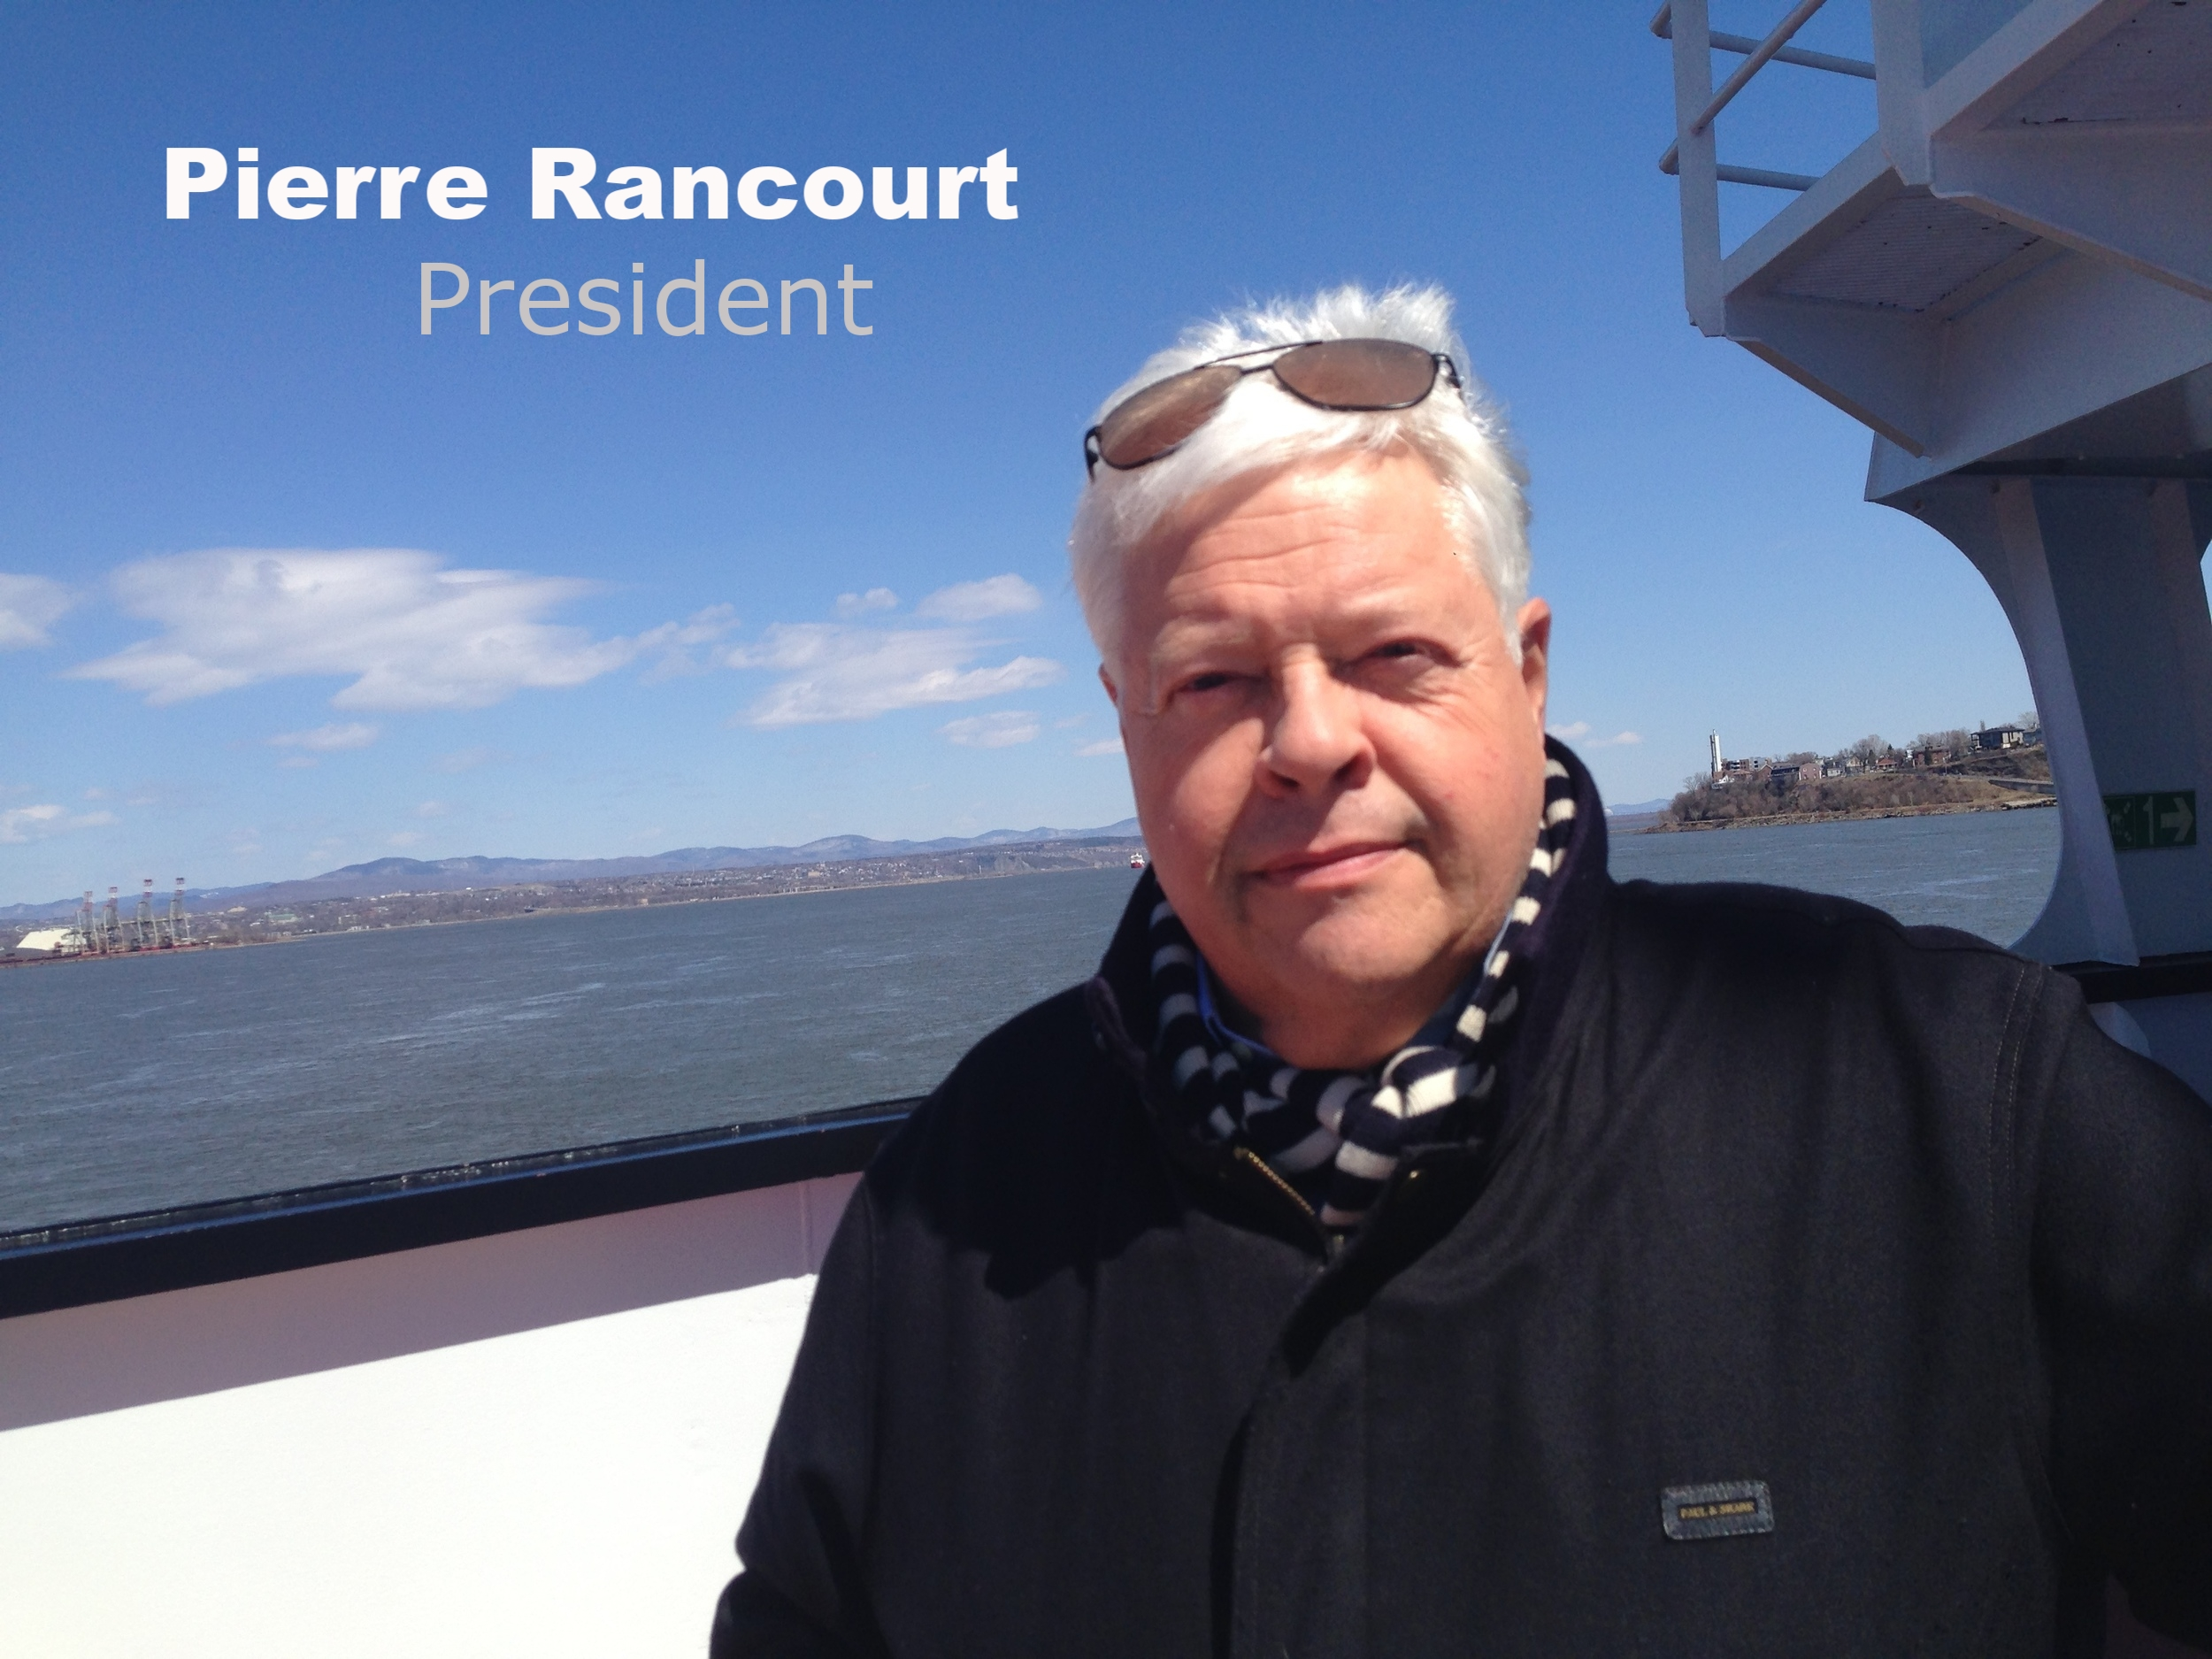 Pierre Rancourt is 100% Shareholder and President of Aventech International, he is an experienced entrepreneur with a proven track record in the global steel industry. Pierre is a man of principles,his word is stronger than steel. His no-nonsense approach to business has earned him many returning customers and an impeccable reputation.